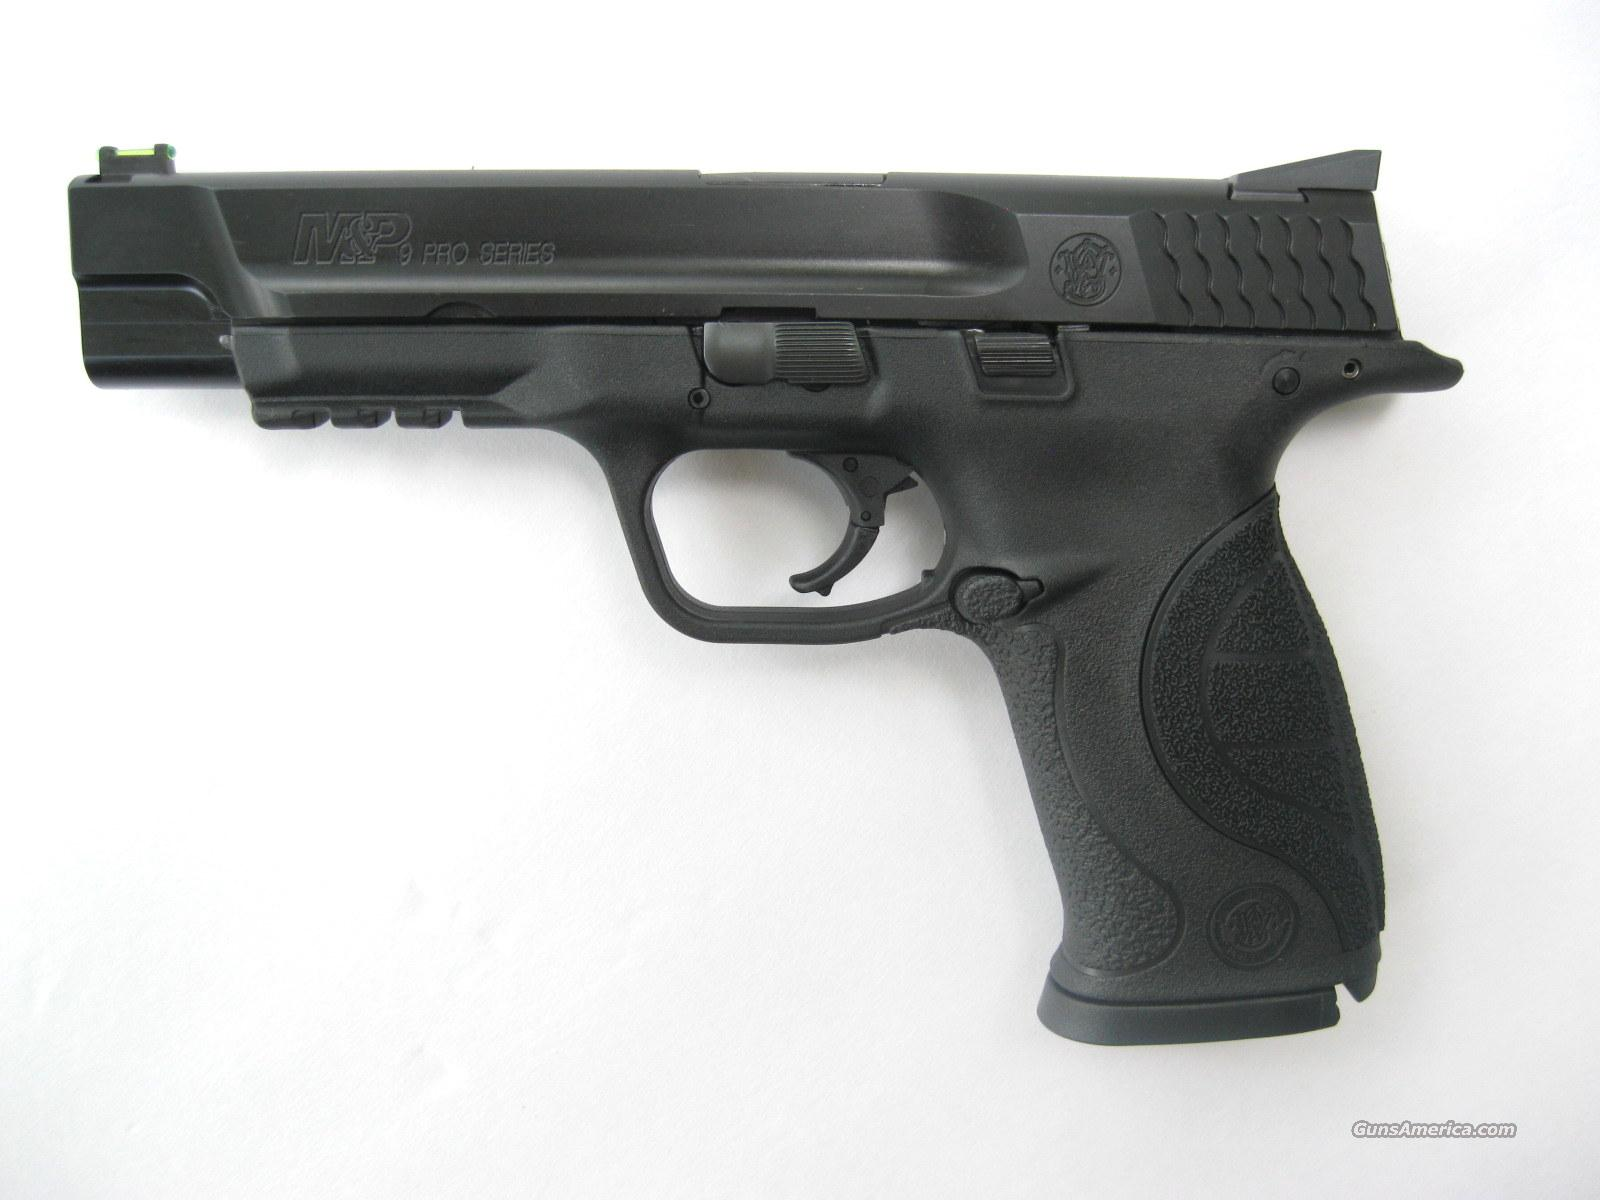 Smith & Wesson M&P Pro Series 9mm *NEW*  17 Rd Fiber Optic 5 in 178010  Guns > Pistols > Smith & Wesson Pistols - Autos > Polymer Frame